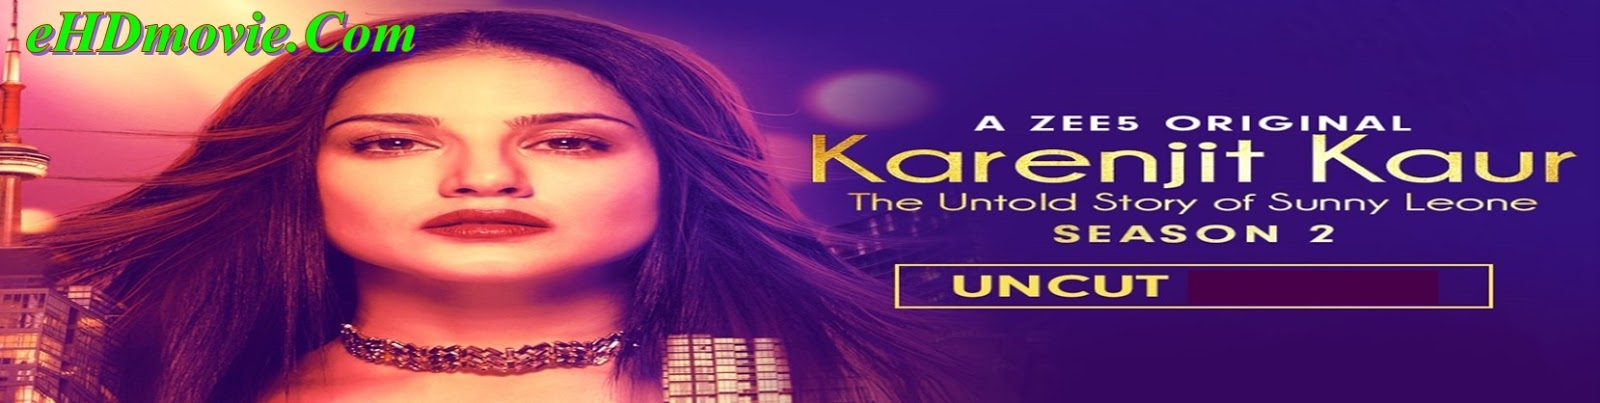 Karenjit Kaur 2018 Season 02 Complete 720p HDRip Hindi ESubs